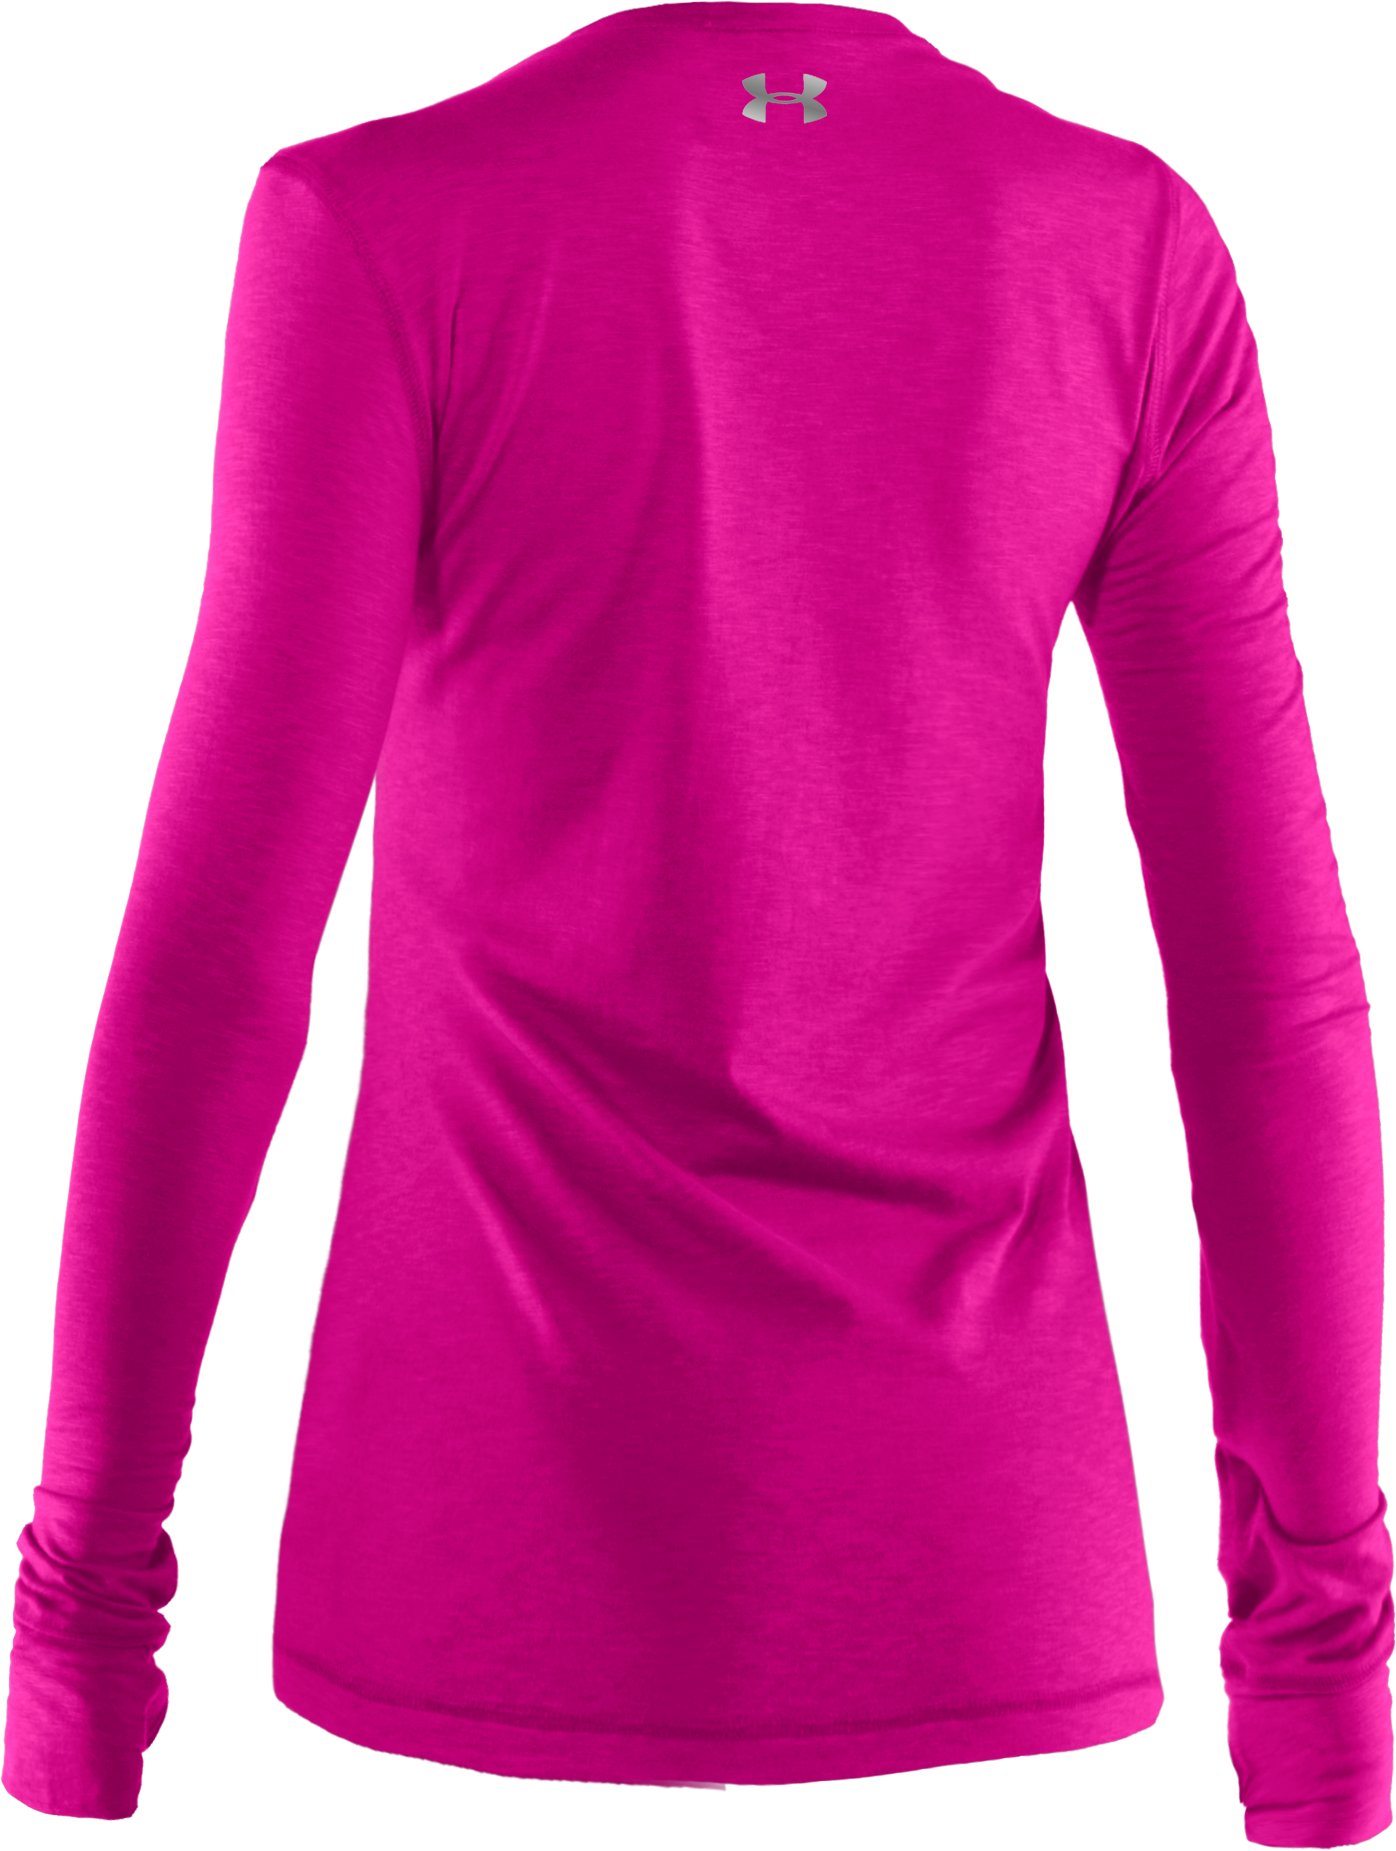 Women's UA Charm Long Sleeve Shirt, Tropic Pink, undefined